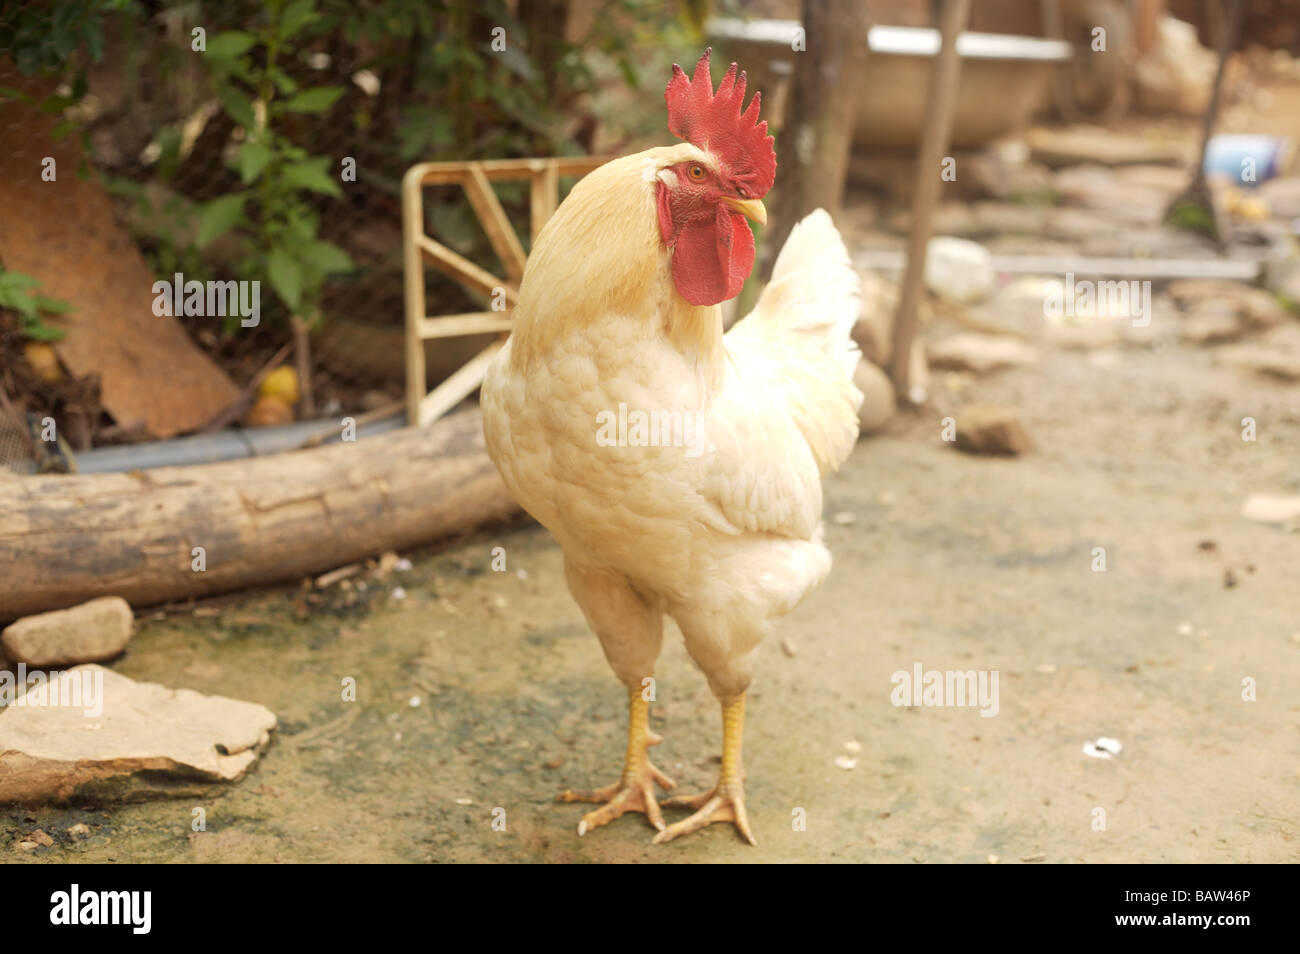 A white cockerel stands proudly in Apolo Bolivia - Stock Image